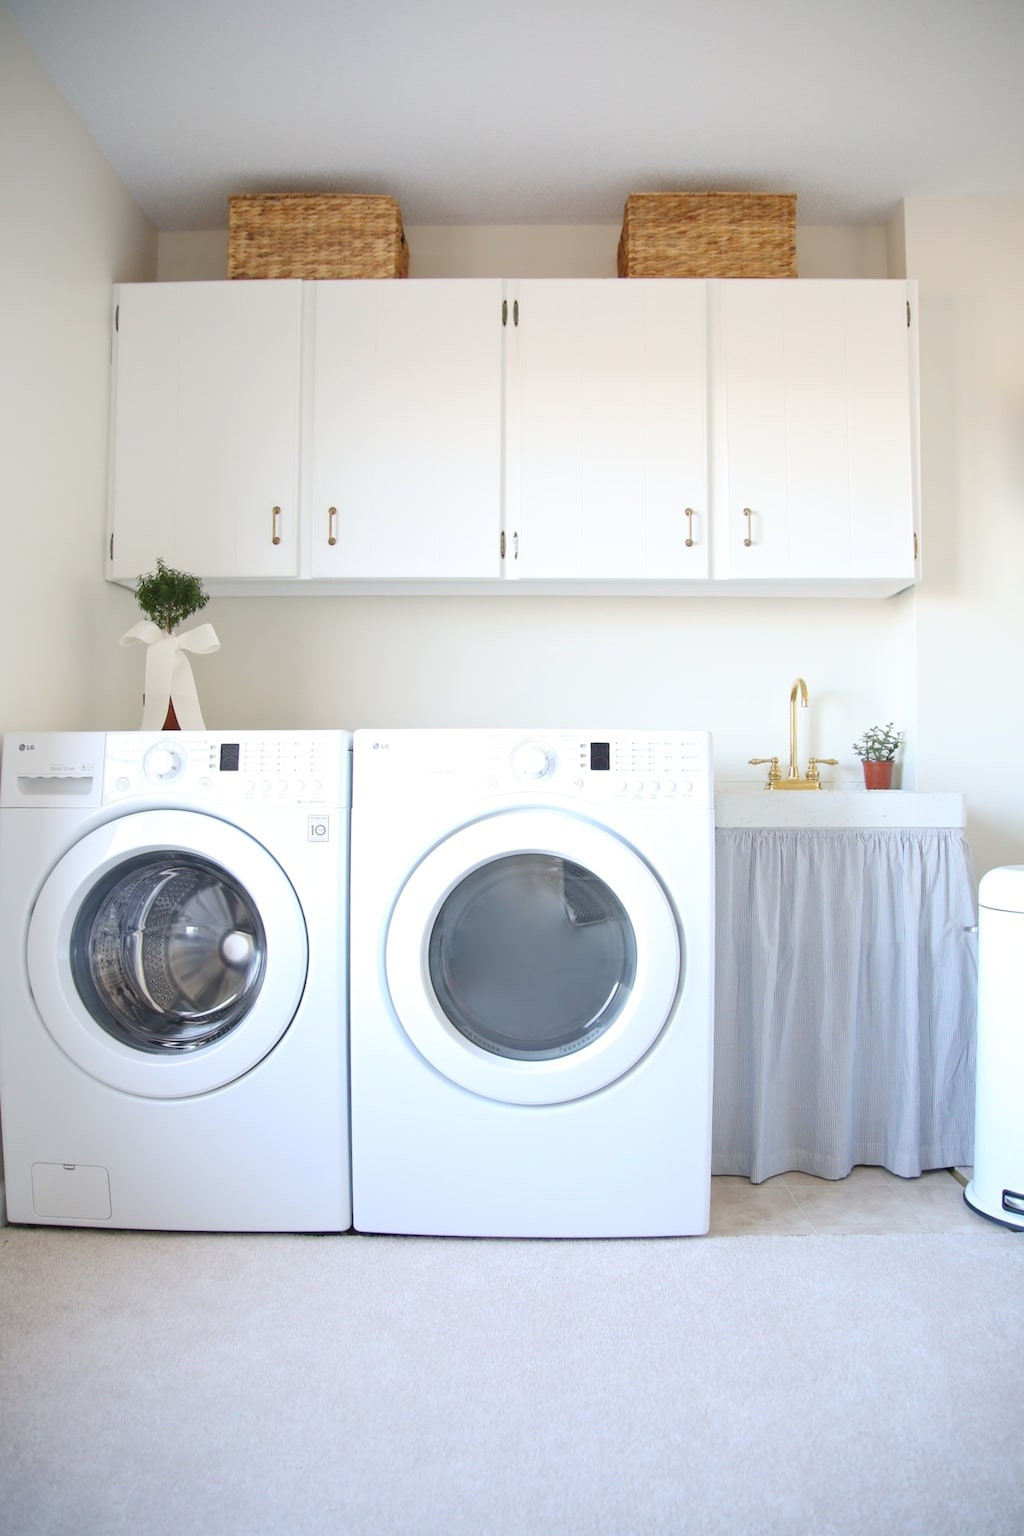 Best ideas about Laundry Room Decor . Save or Pin Laundry Room Decor Now.